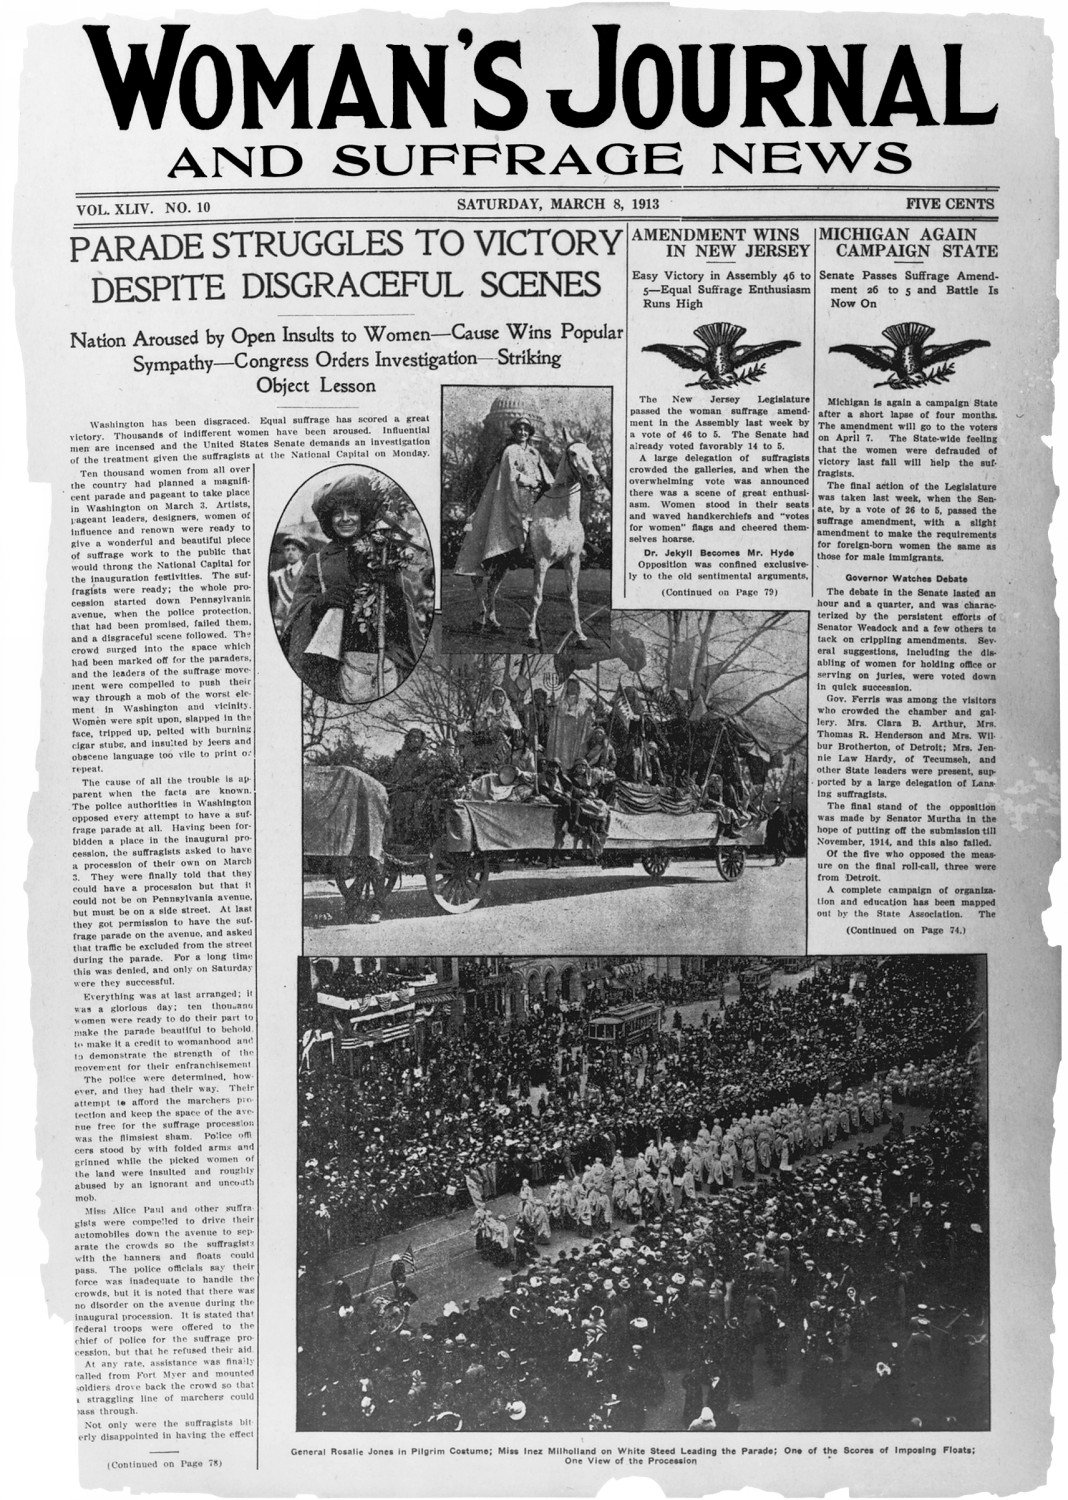 1913 Womans Journal and Suffrage News